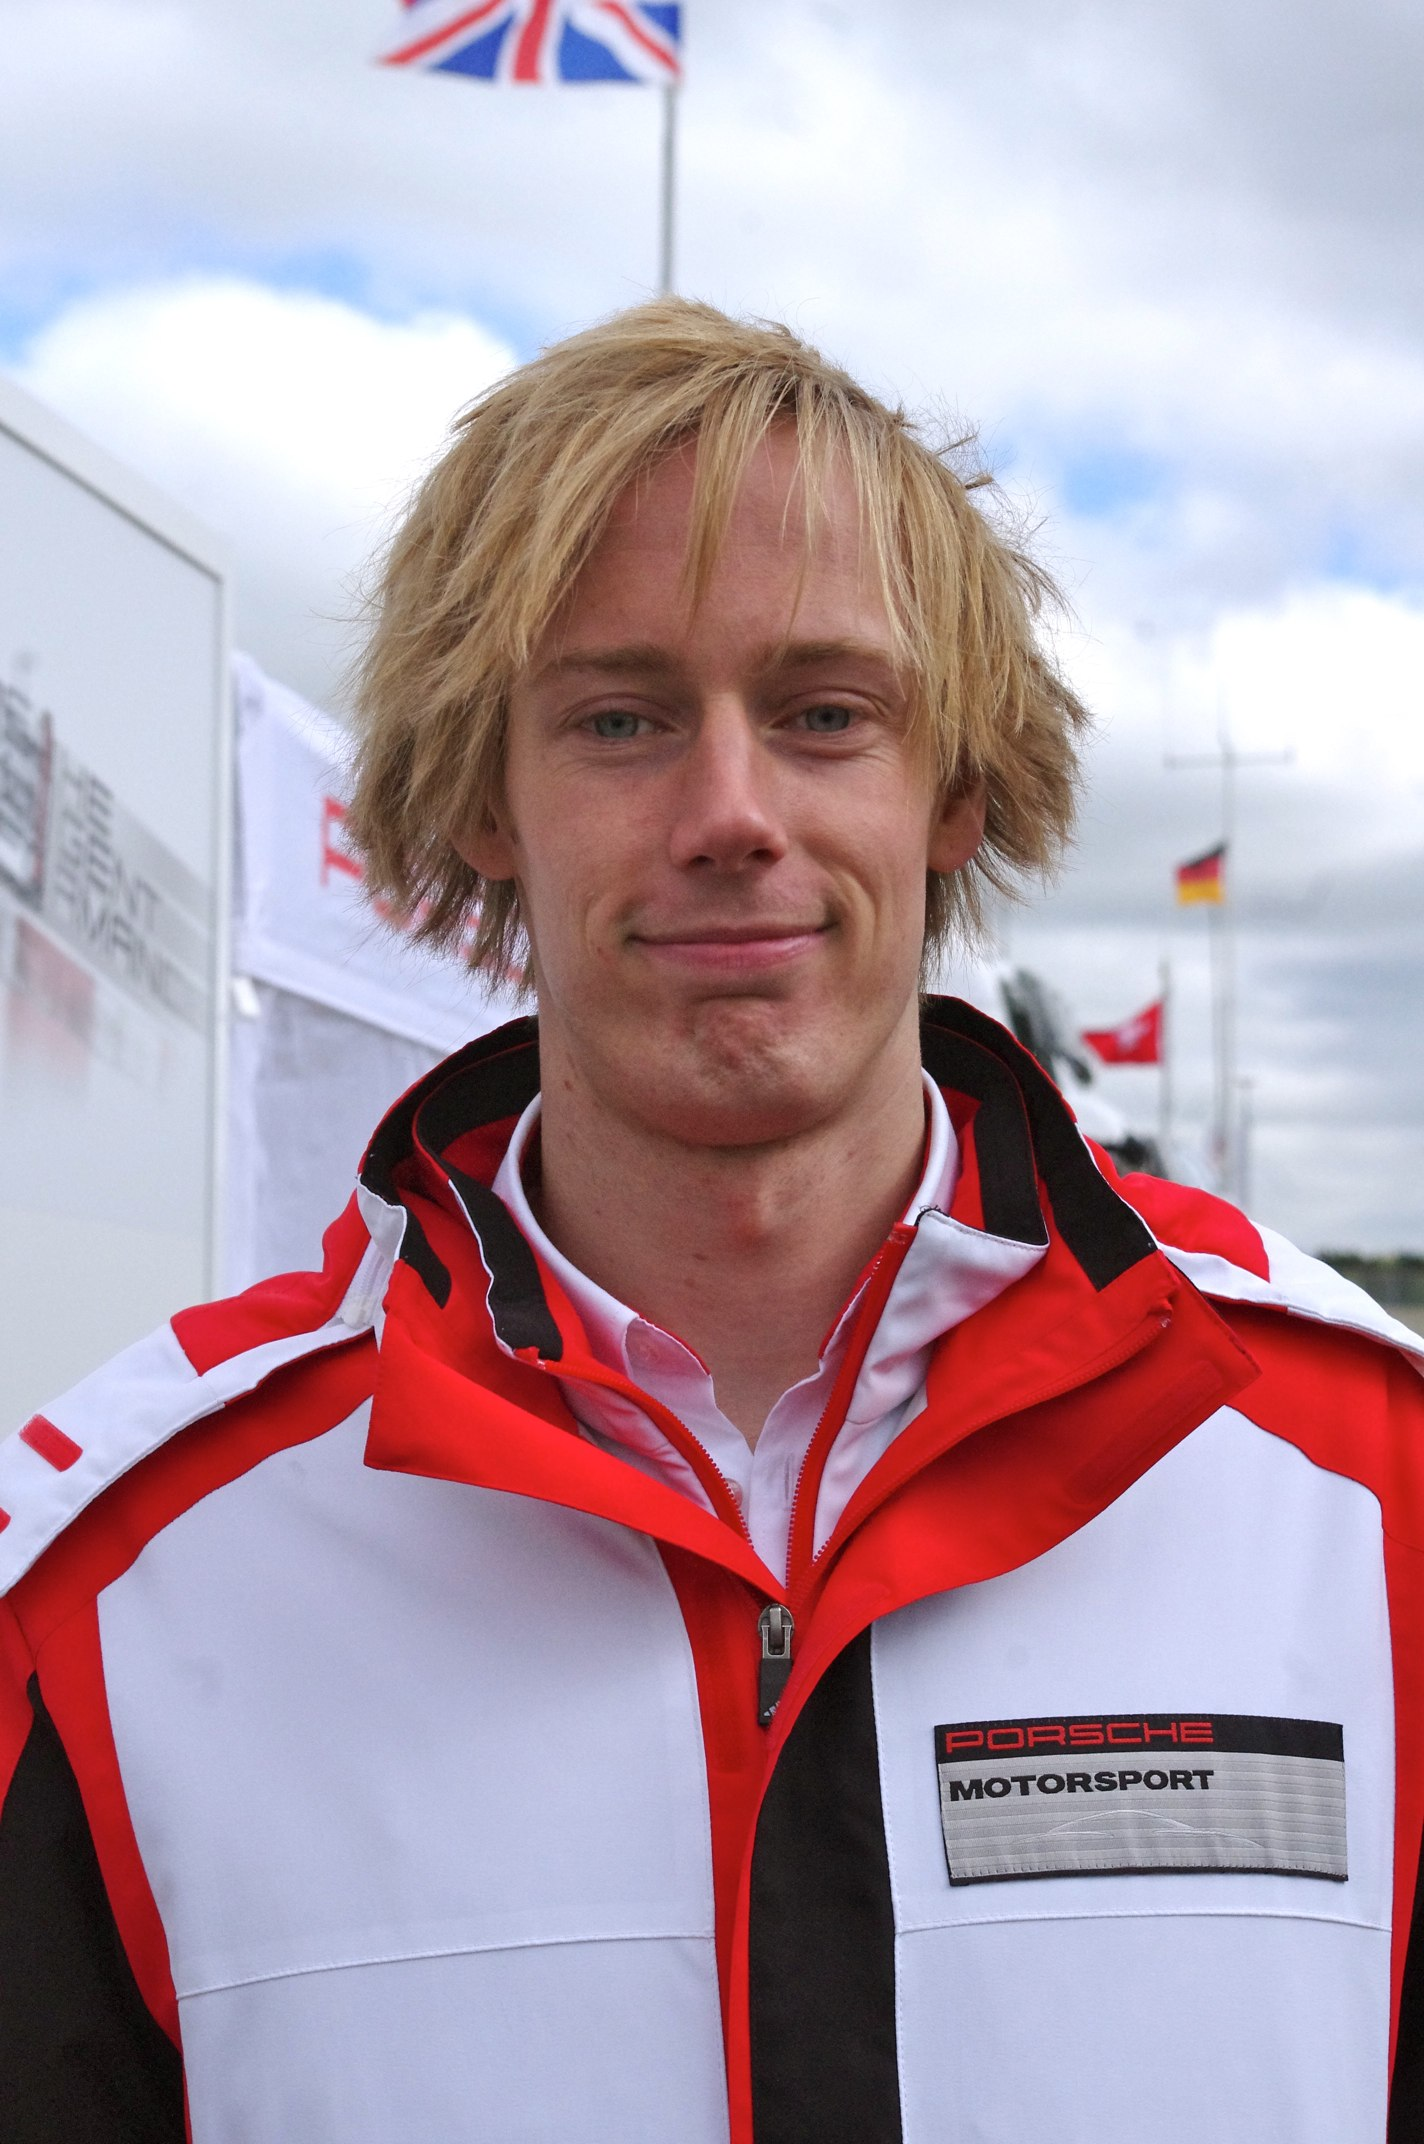 Fastest Car In The World 2015 >> Brendon Hartley - Wikipedia